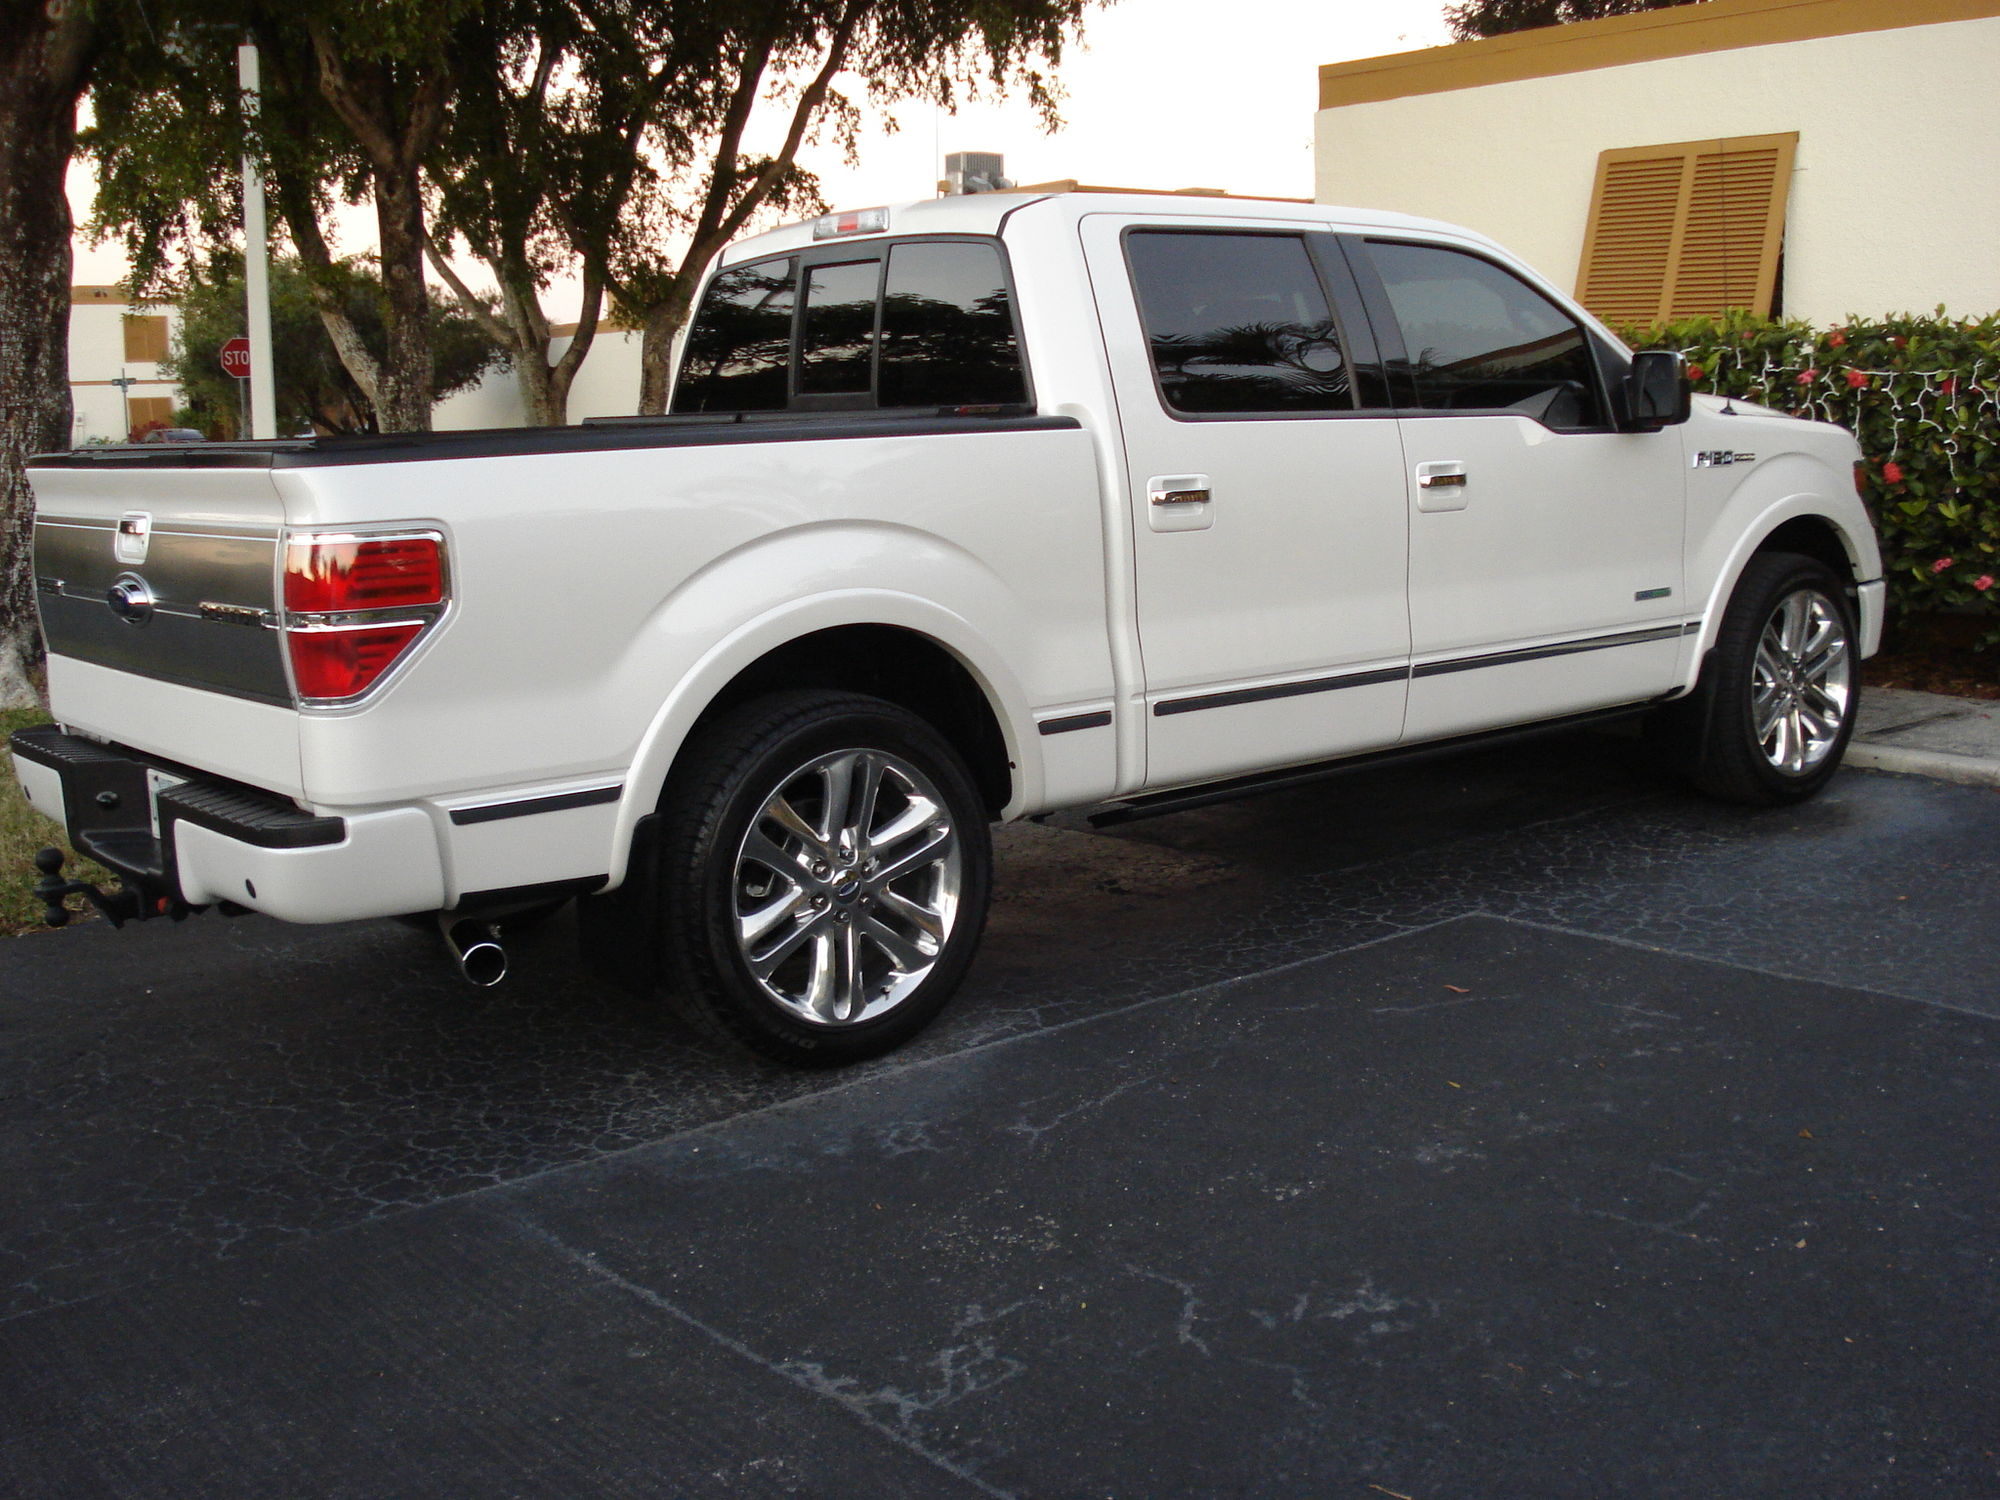 Being the 15 platinum wheels makes it more exclusive than the lower model f150 s go for it you ll love the looks